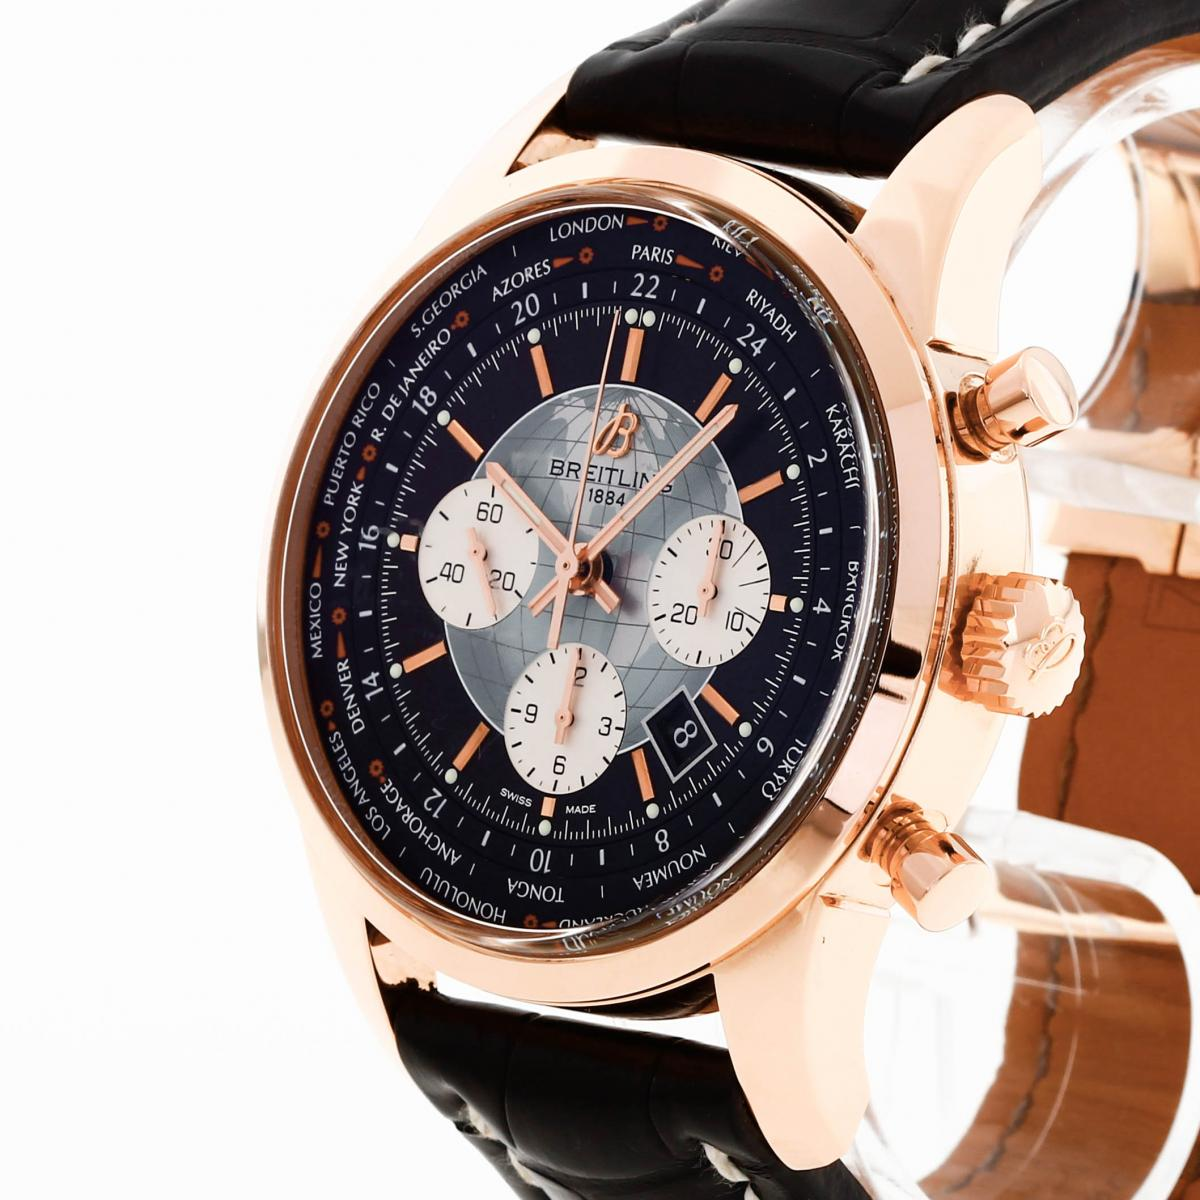 Breitling Transocean Chronograph Ref. RB0510